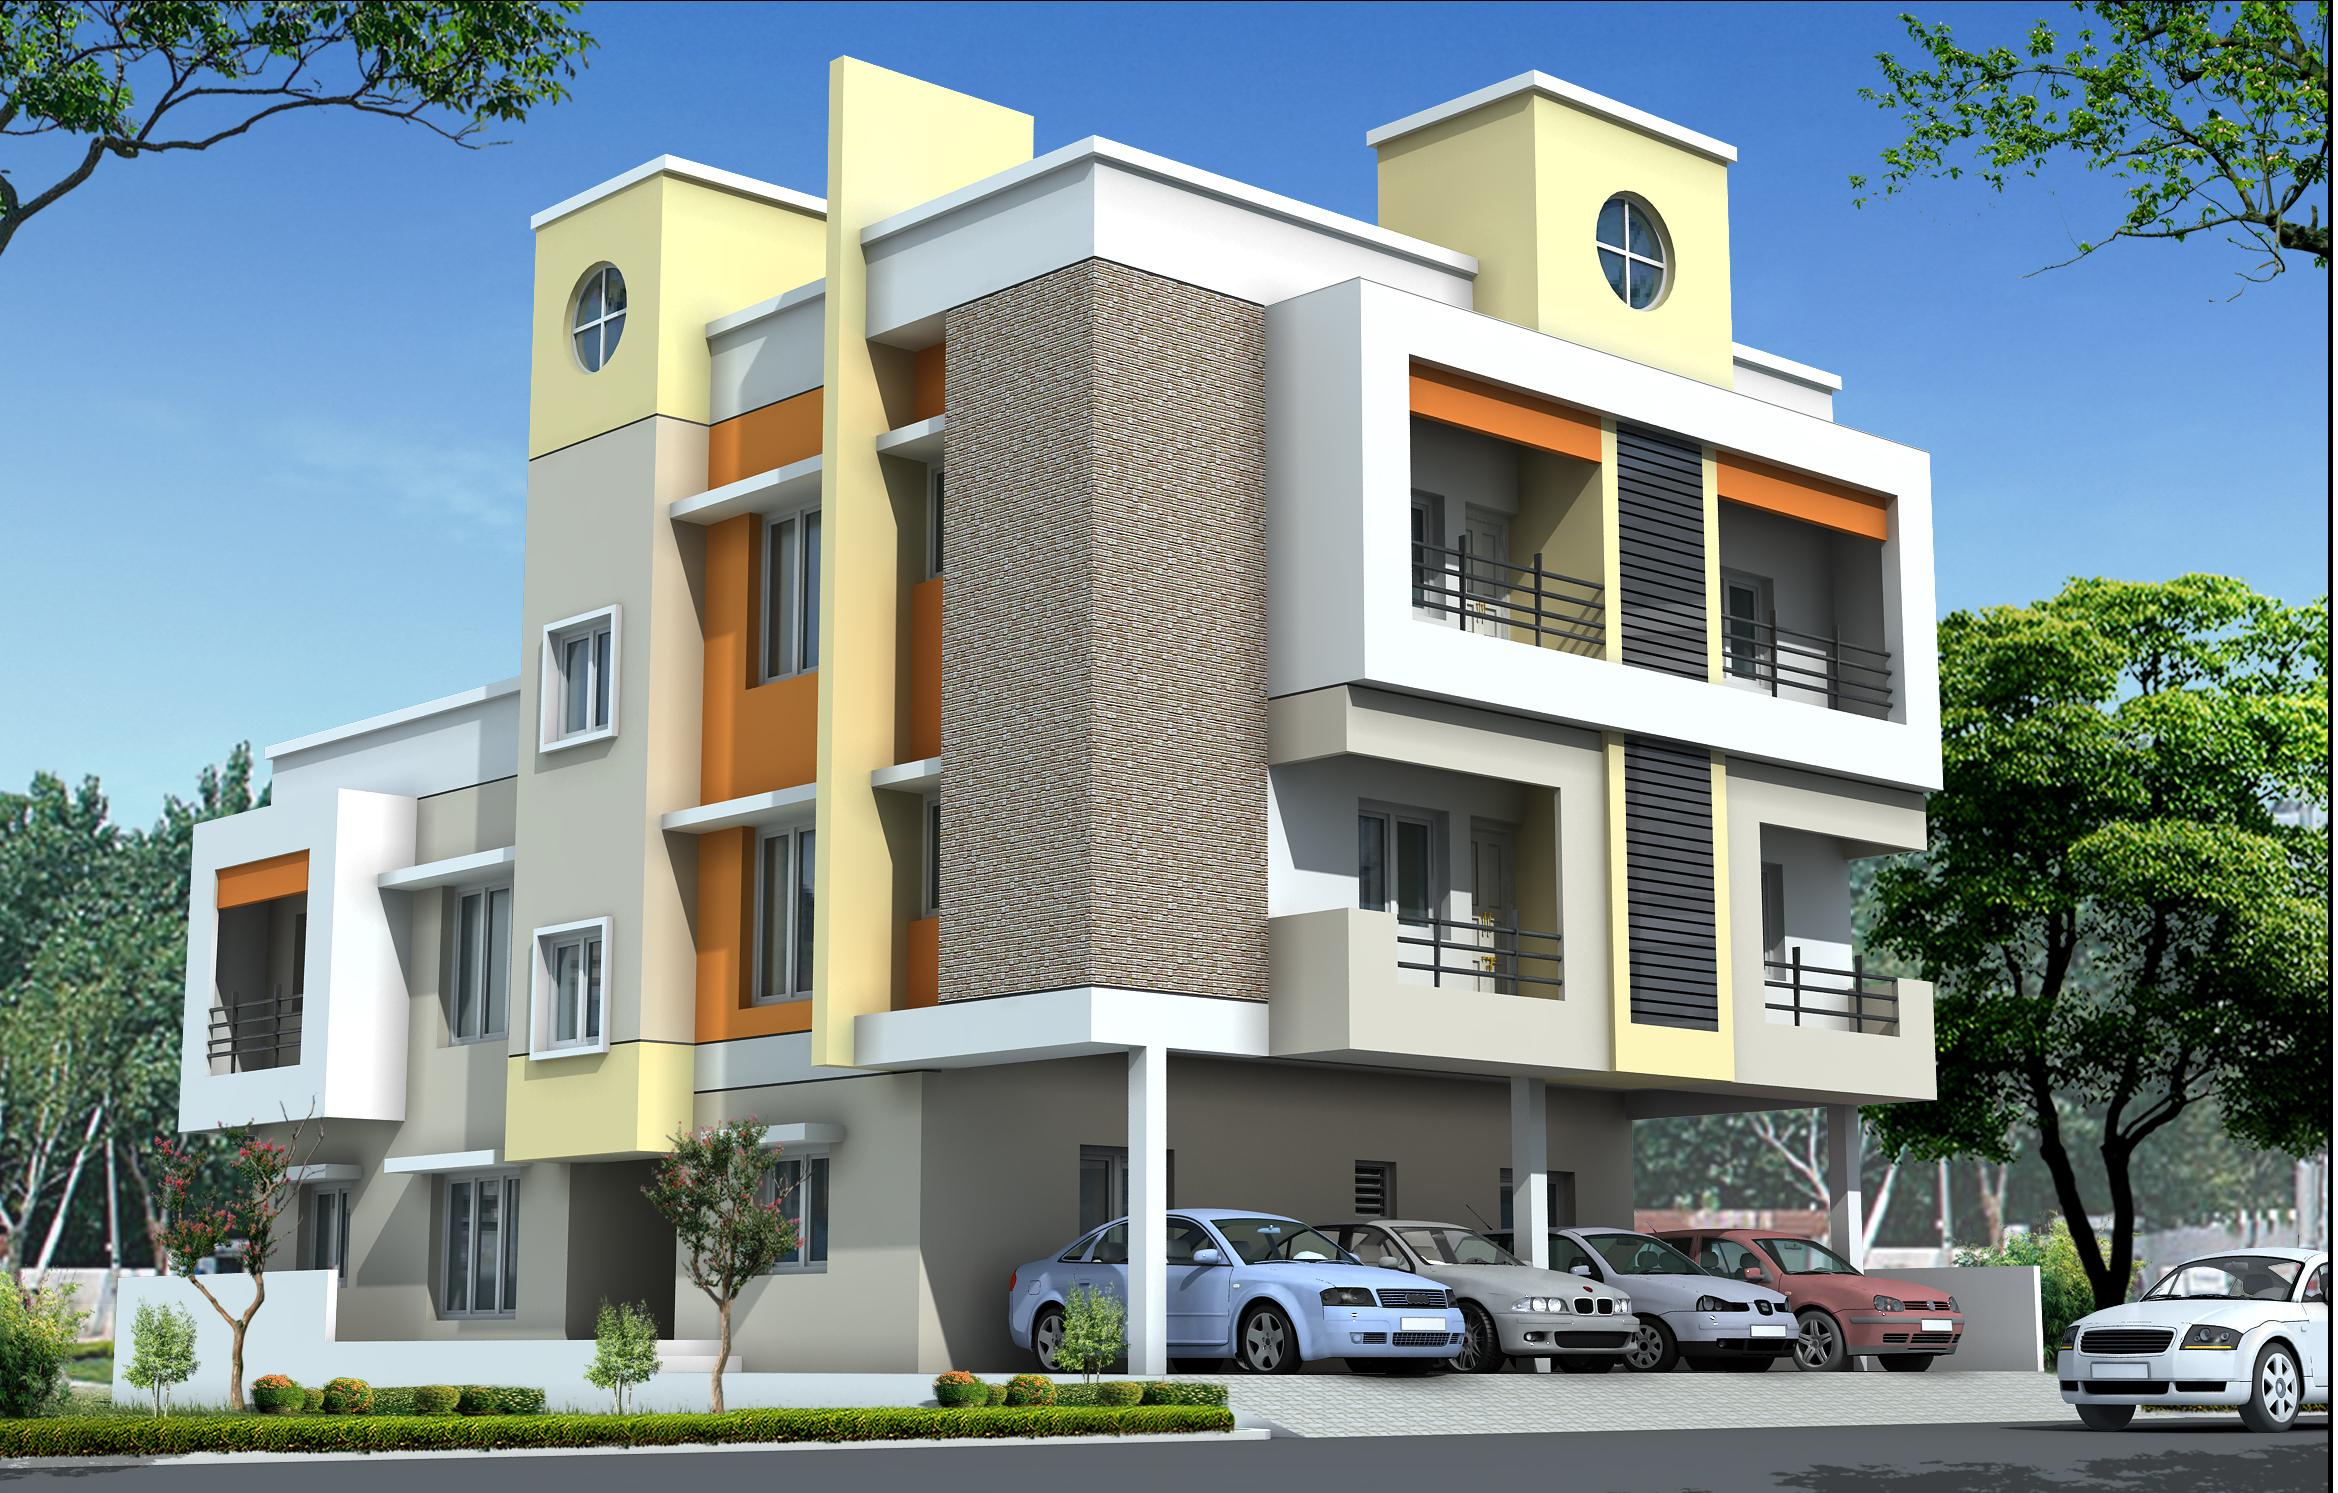 Elevations of residential buildings joy studio design Residential design